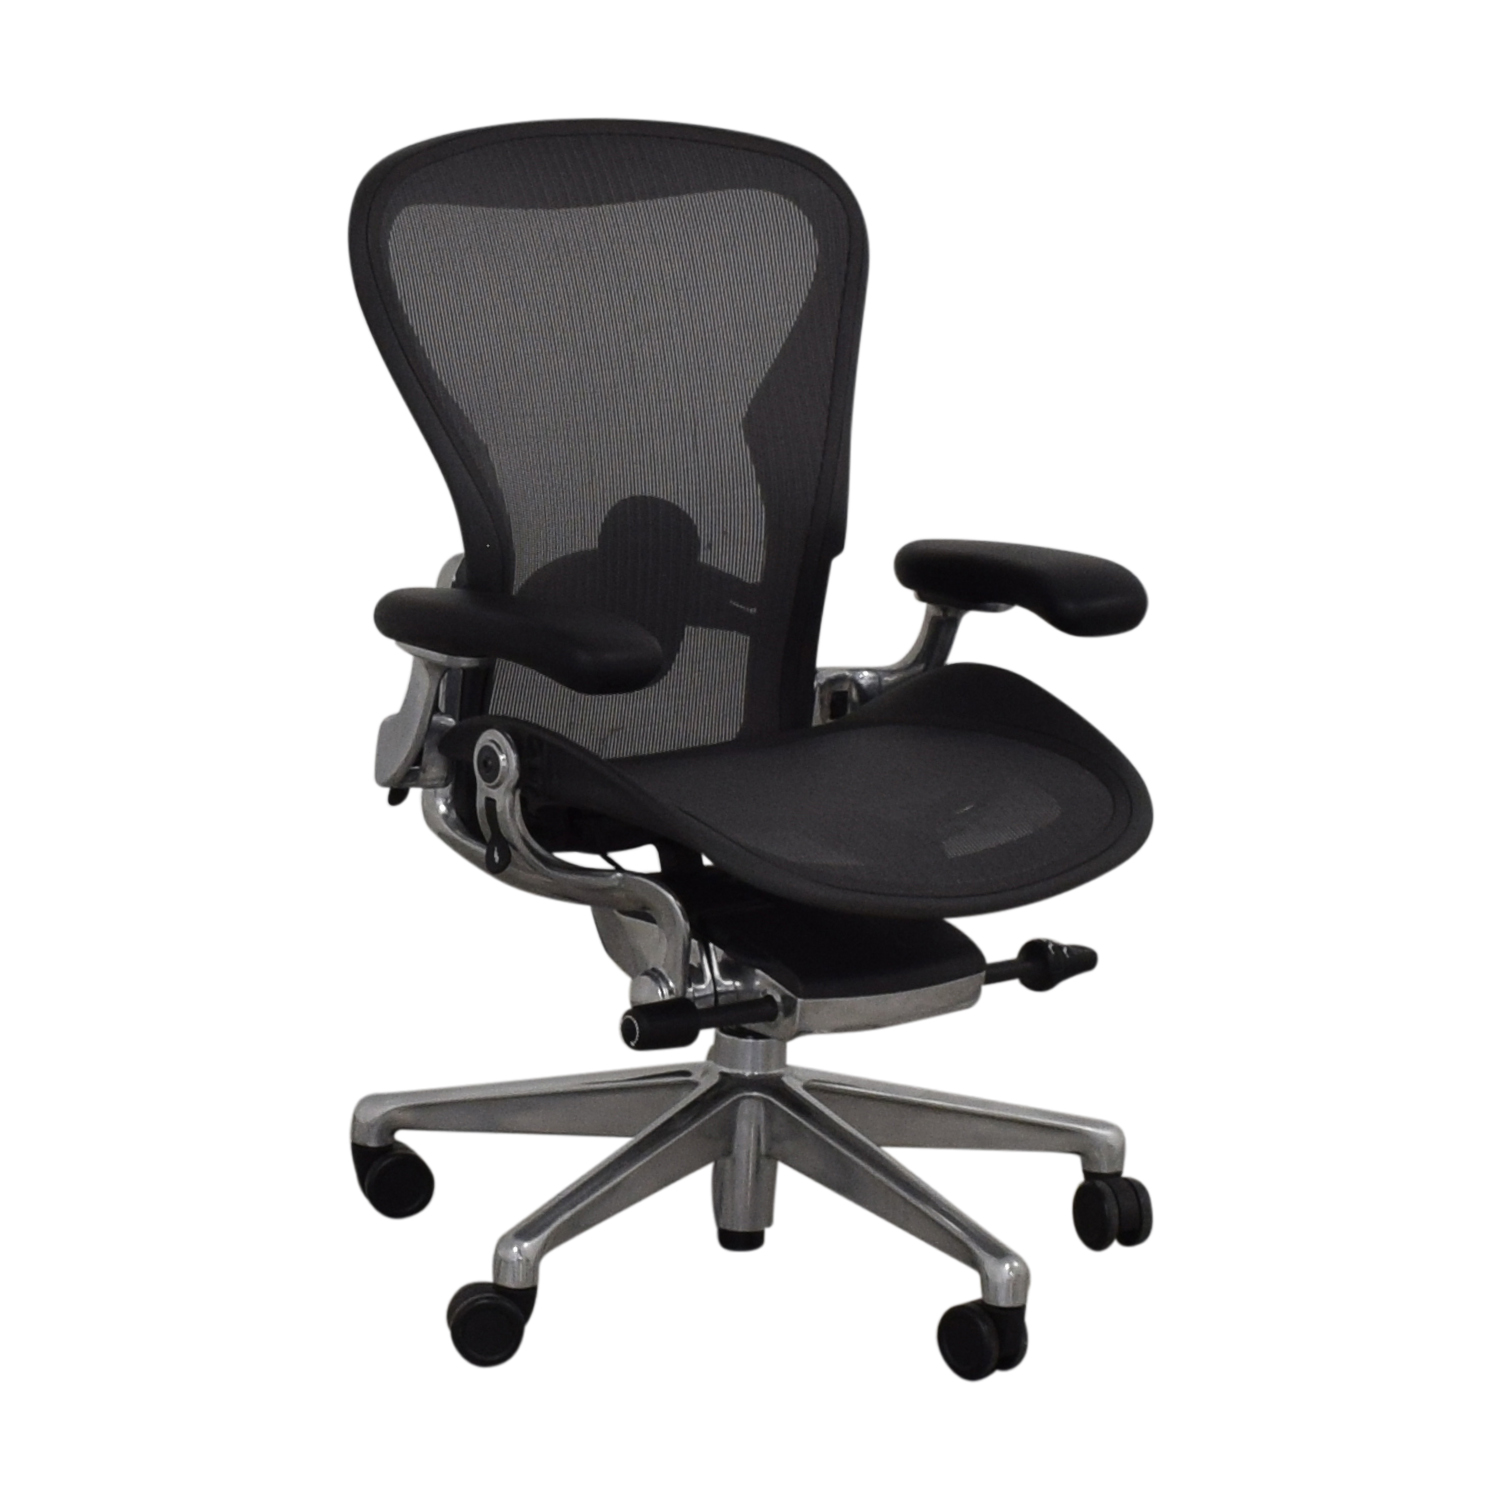 Herman Miller Herman Miller Aeron Size B Office Chair nyc